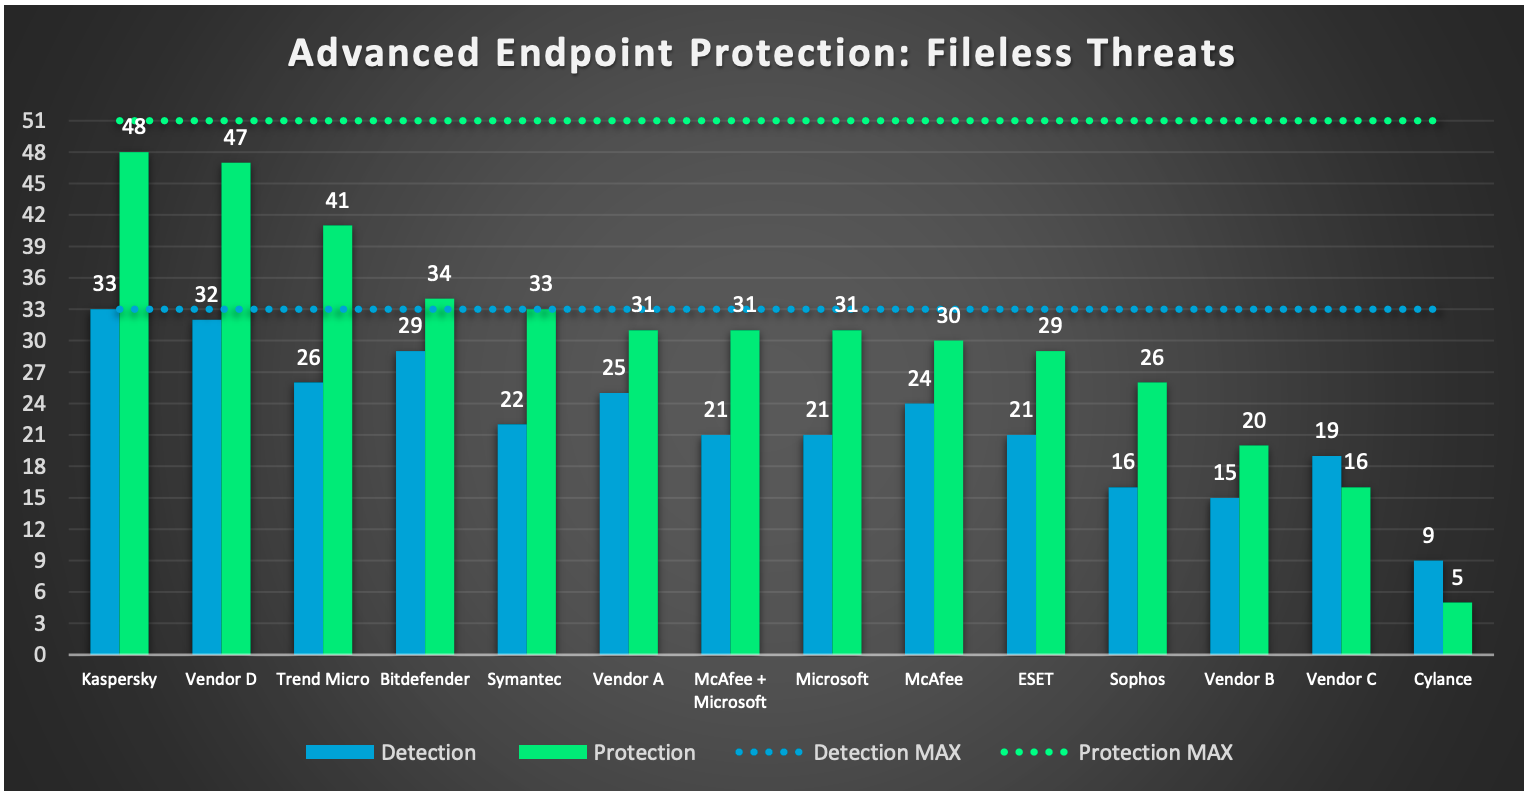 AV-TEST-Detection-Fileless-Attacks-and-Protection-2019